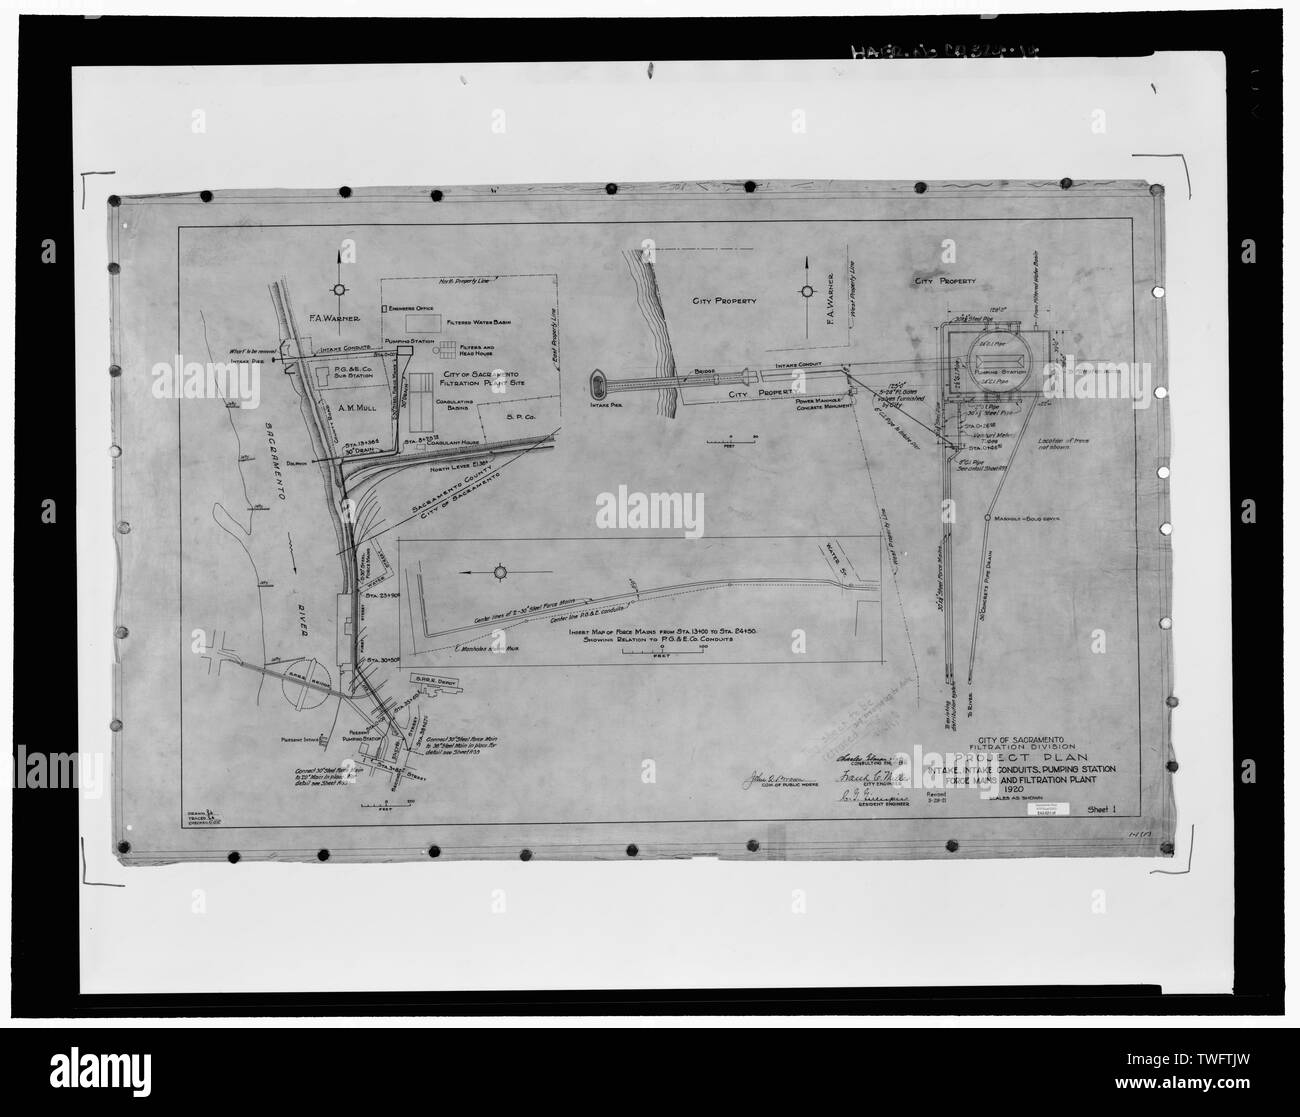 PROJECT PLAN, INTAKE PIER, RAW WATER CONDUITS, PUMPING STATION FORCE MAINS, TREATED WATER PIPELINES, AND FILTRATION PLANT, SHEET 1 OF 117, 1920. - Sacramento River Water Treatment Plant Intake Pier and Access Bridge, Spanning Sacramento River approximately 175 feet west of eastern levee on river; roughly .5 mile downstream from confluence of Sacramento and American Rivers, Sacramento, Sacramento County, CA - Stock Image